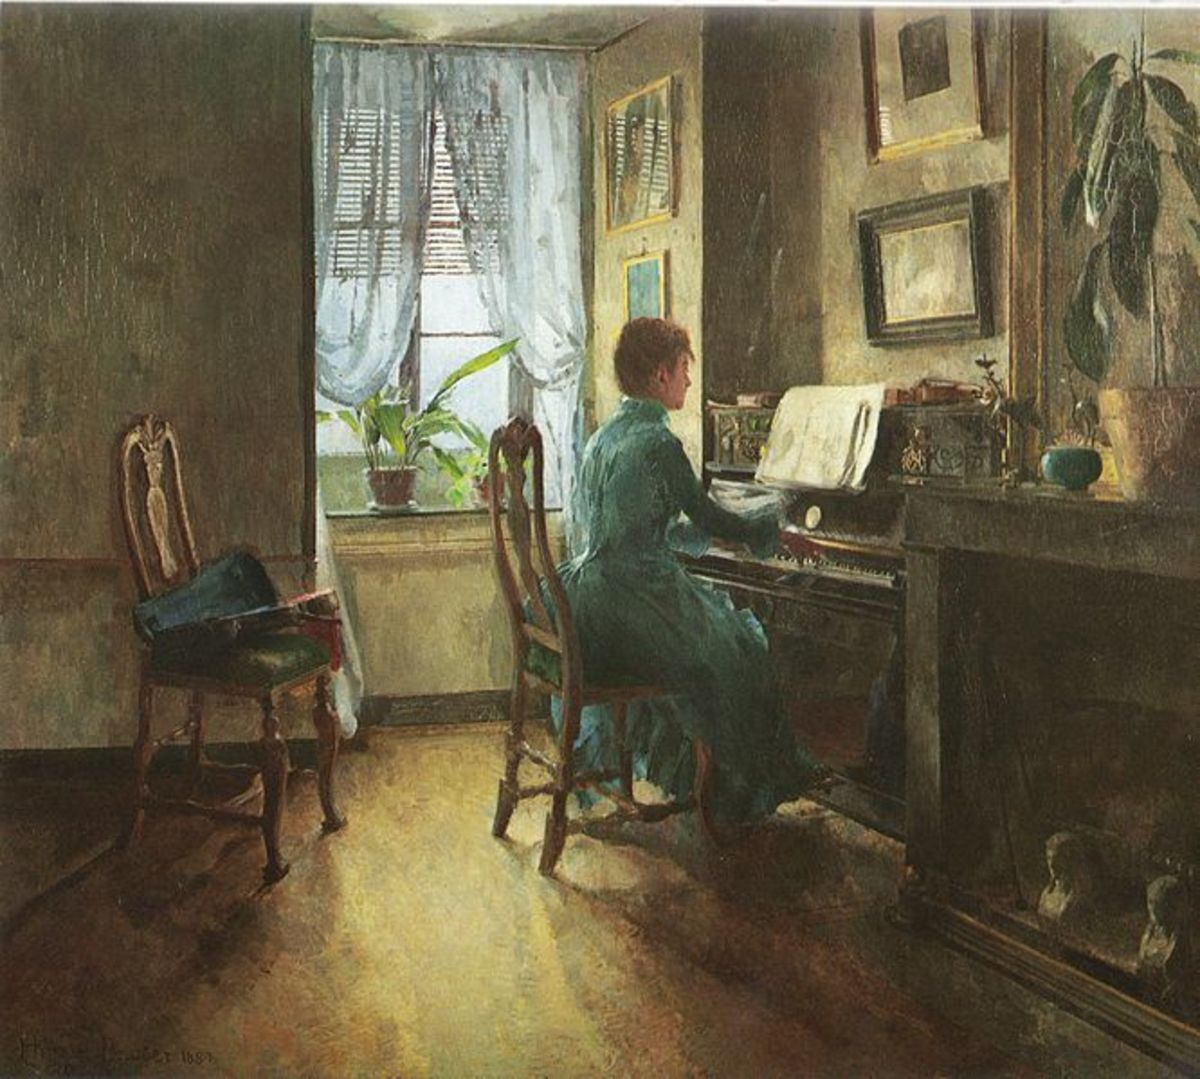 The Artist's Home (1887) is in the public domain in the United States and those countries with a copyright term of life of the author plus 70 years or less.